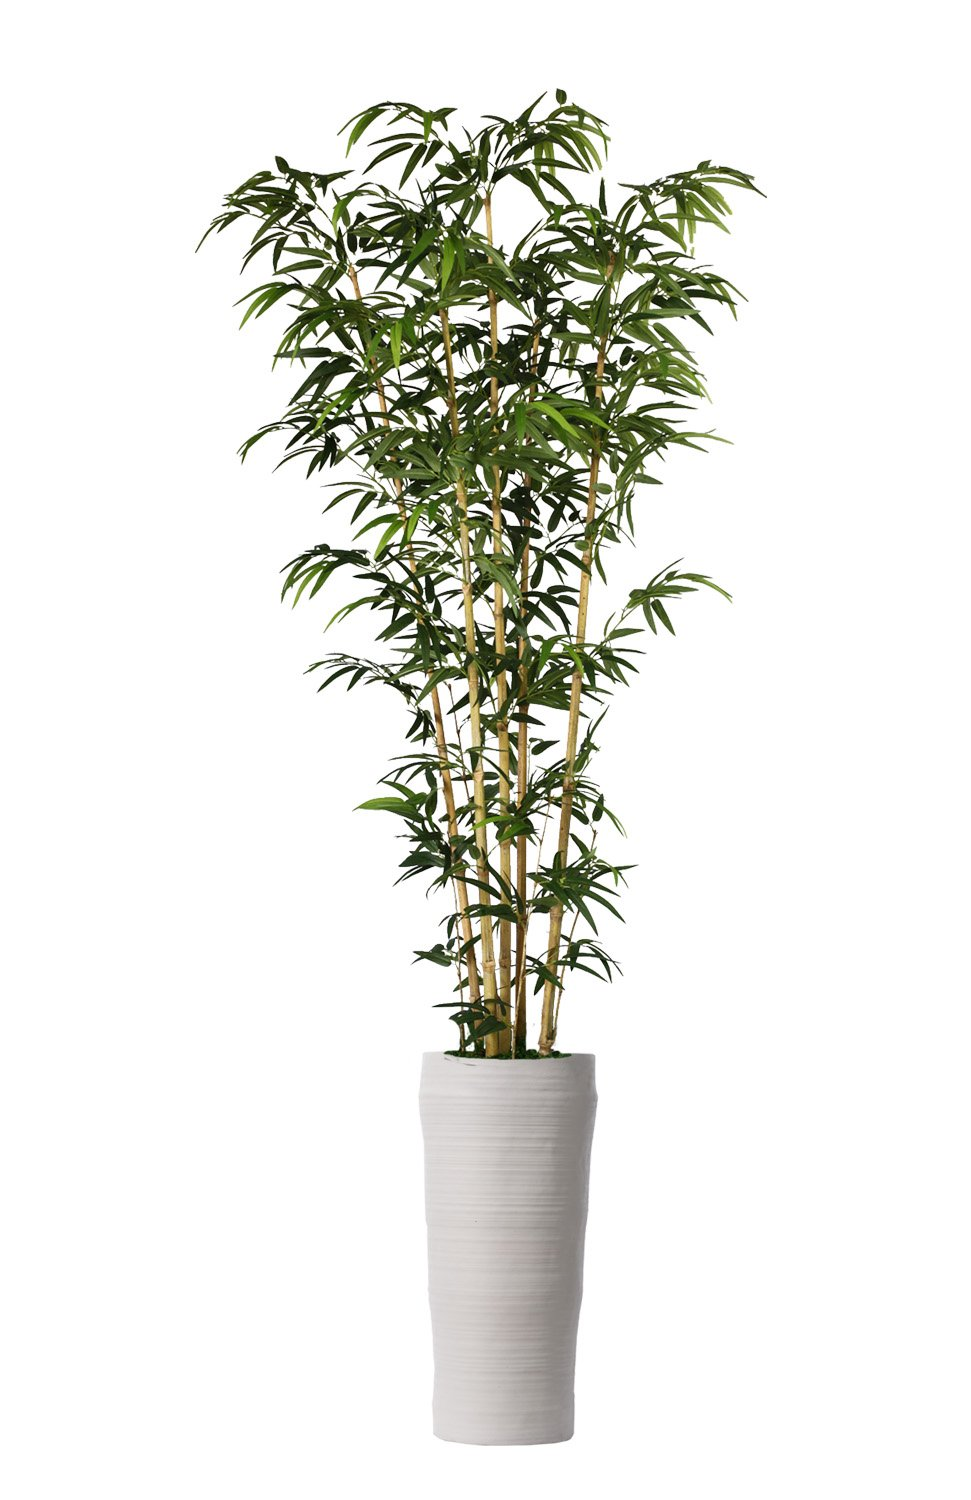 Laura Ashley VHX116218 93'' Bamboo Tree in Natural Poles in Planter Tree by Laura Ashley (Image #3)